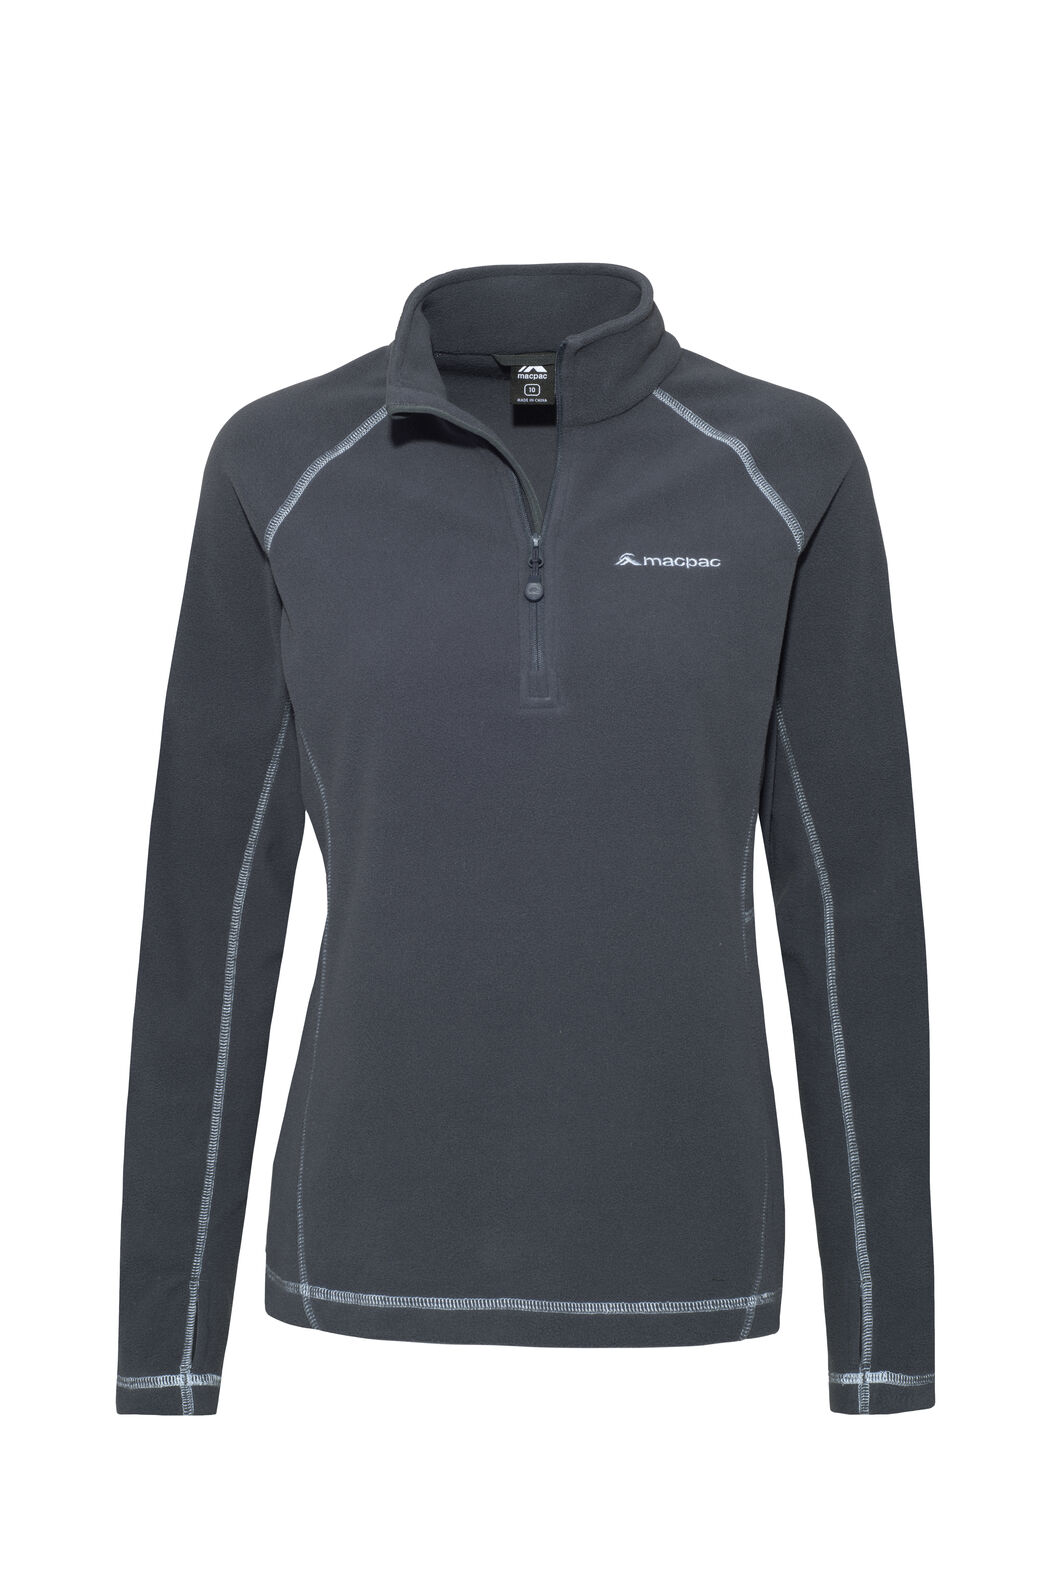 Macpac Tui Polartec® Micro Fleece® Pullover — Women's, India Ink, hi-res